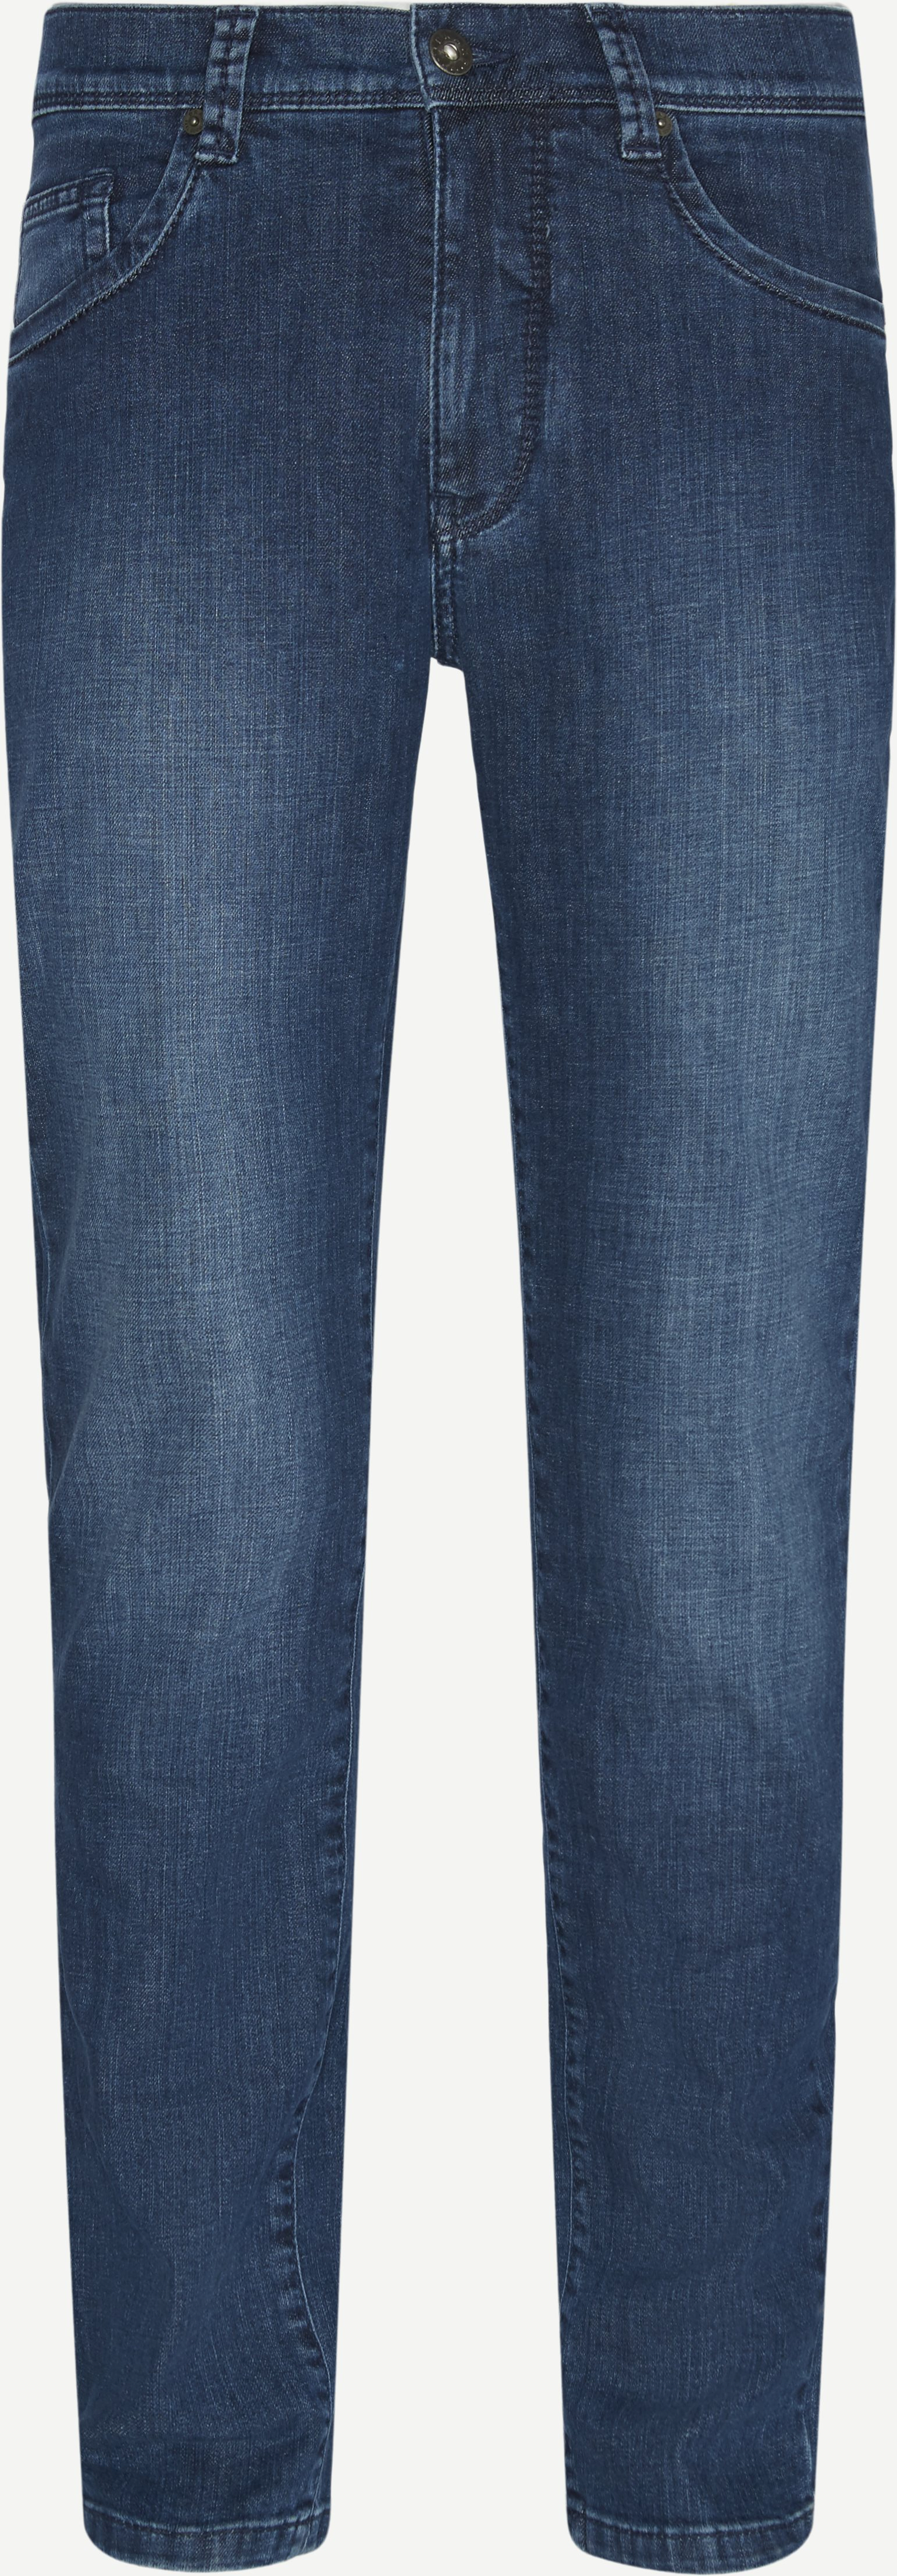 Jeans - Straight fit - Jeans-Blau